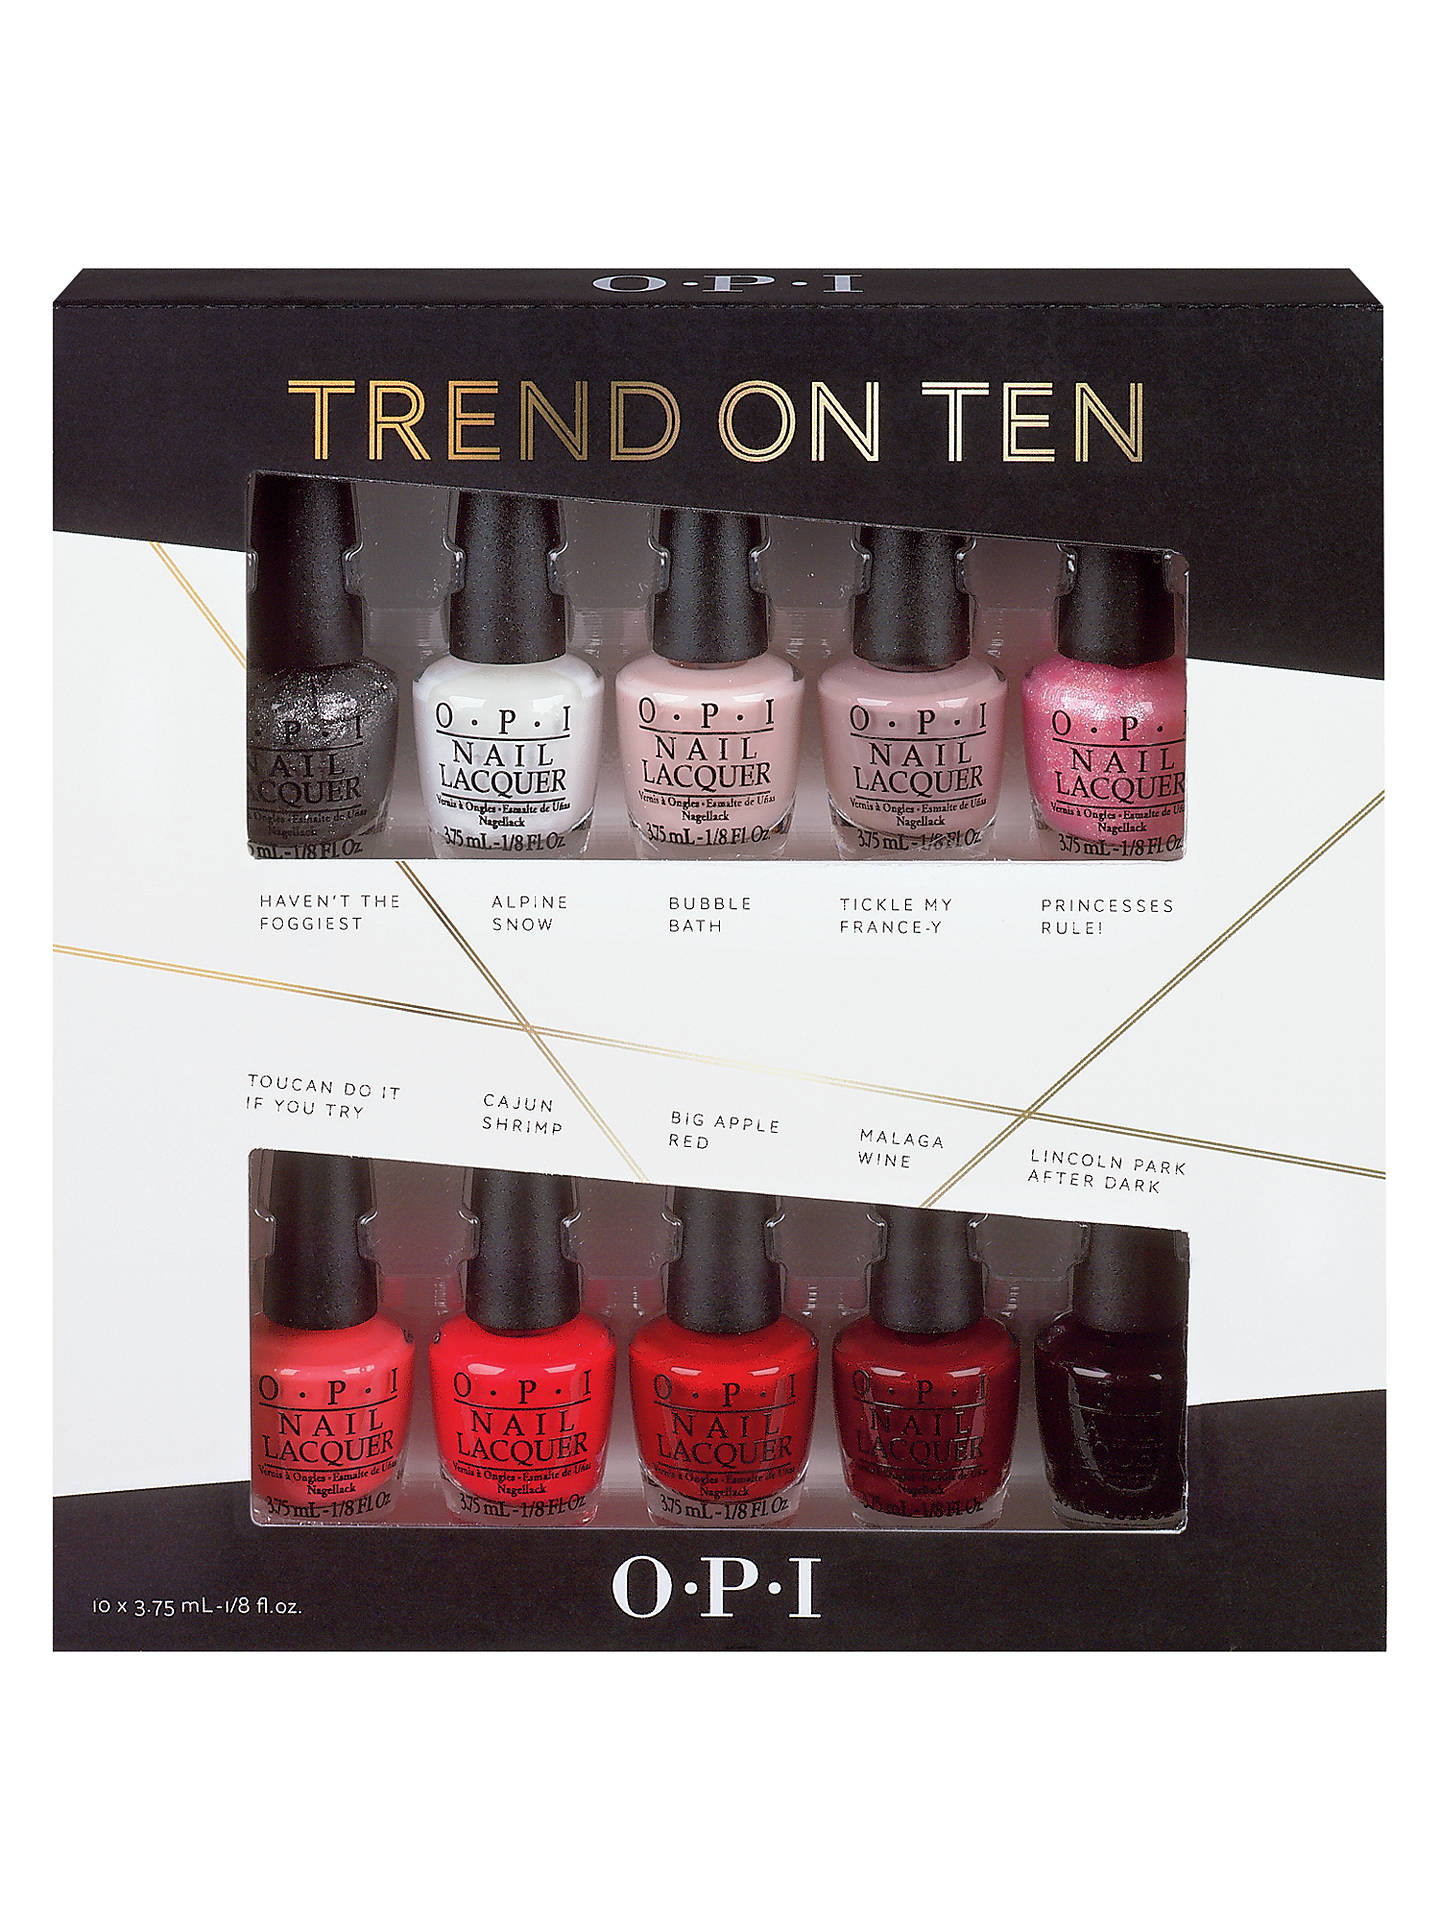 Opi Nails Nail Lacquer Trend On Ten 10 Pack Gift Set At John